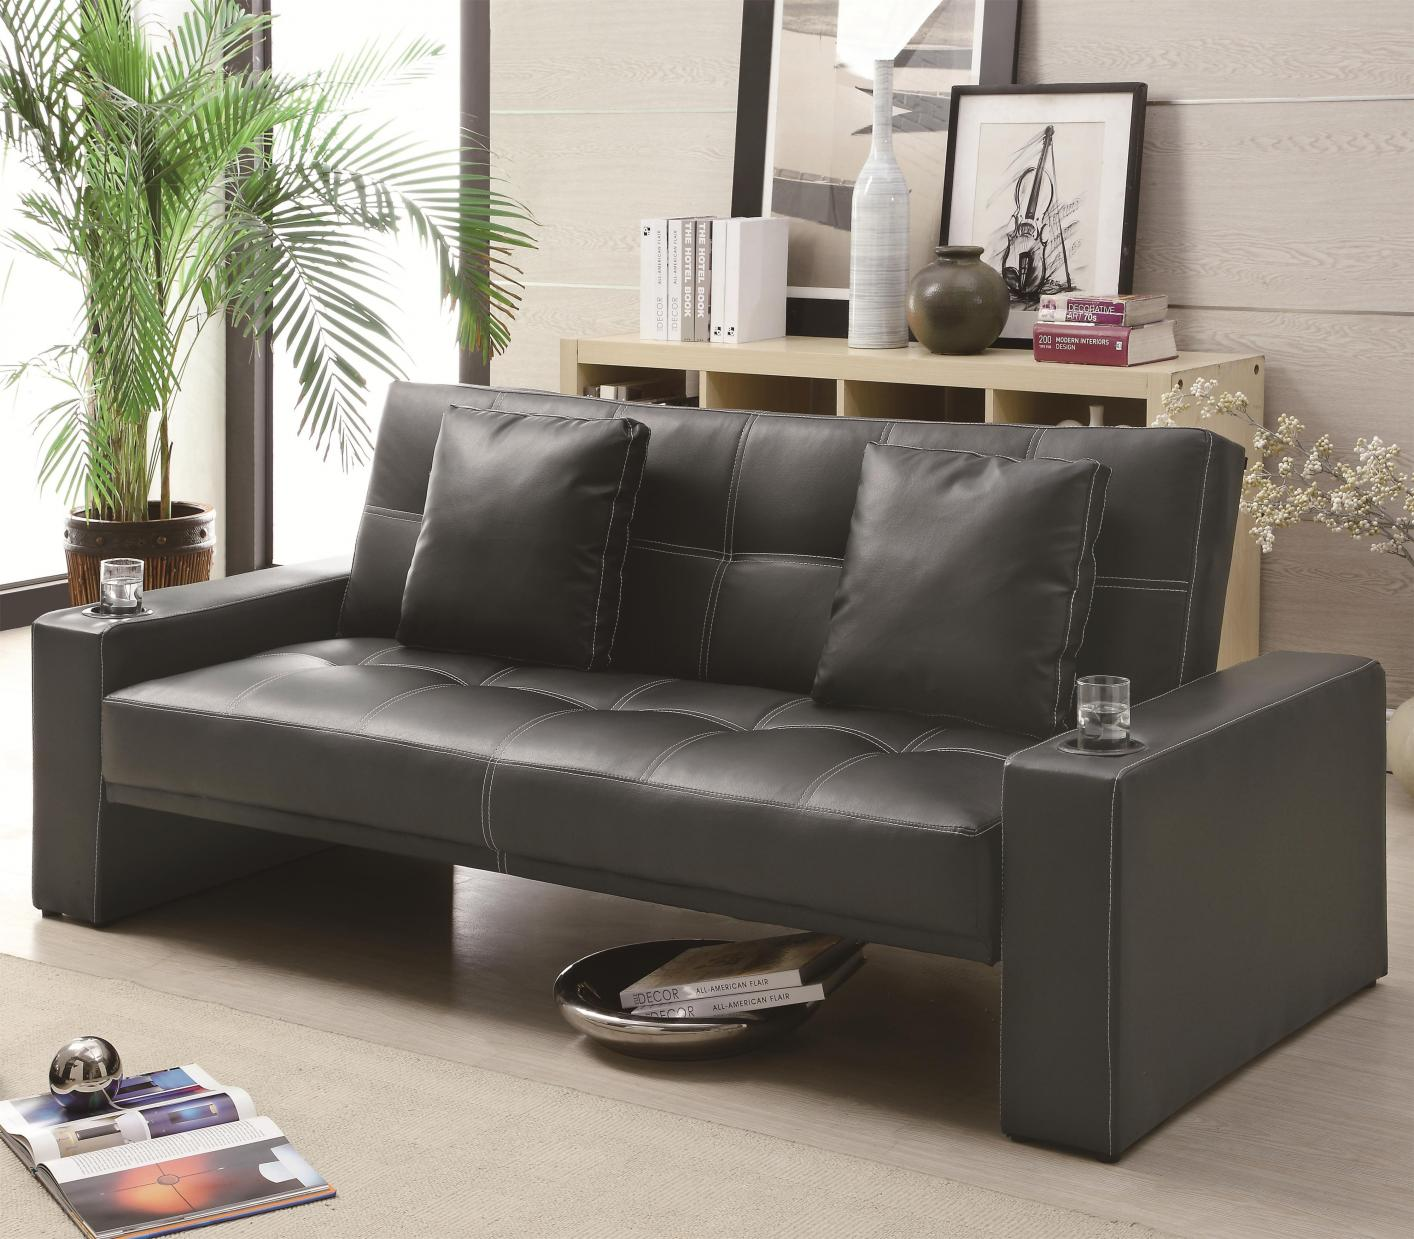 Black Leather Sofa Bed - Coaster 300125 Black Leather Sofa Bed - Steal-A-Sofa Furniture